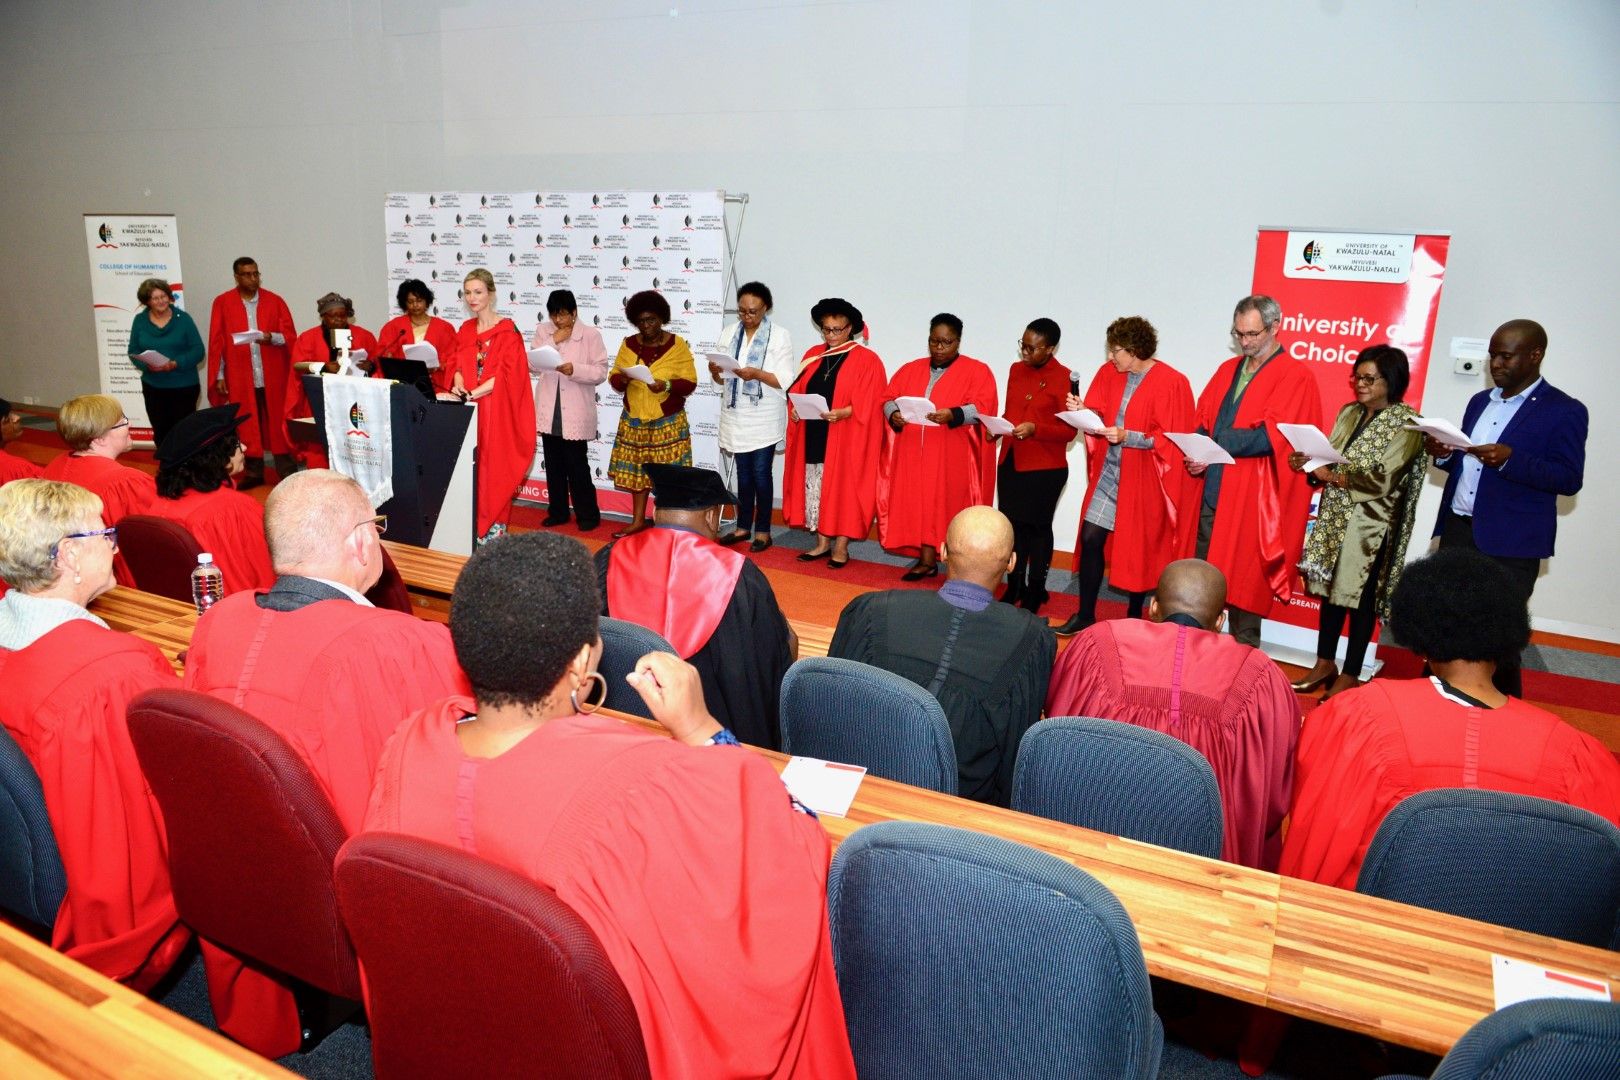 Professor Kathleen Pithouse-Morgan, presenting with (from left) Dr Jean Stuart, Professors Inbanathan Naicker, Relebohile Moletsane, and Daisy Pillay, Dr Anita Hiralaal, Professor Theresa Chisanga, Ms Makie Kortjass, Dr Delysia Timm, Dr Lungile Masinga, Ms Nosipho Mbatha, Dr Bridget Campbell, Dr Chris de Beer, Professor Nithi Muthukrishna and Mr S'phiwe Madondo.